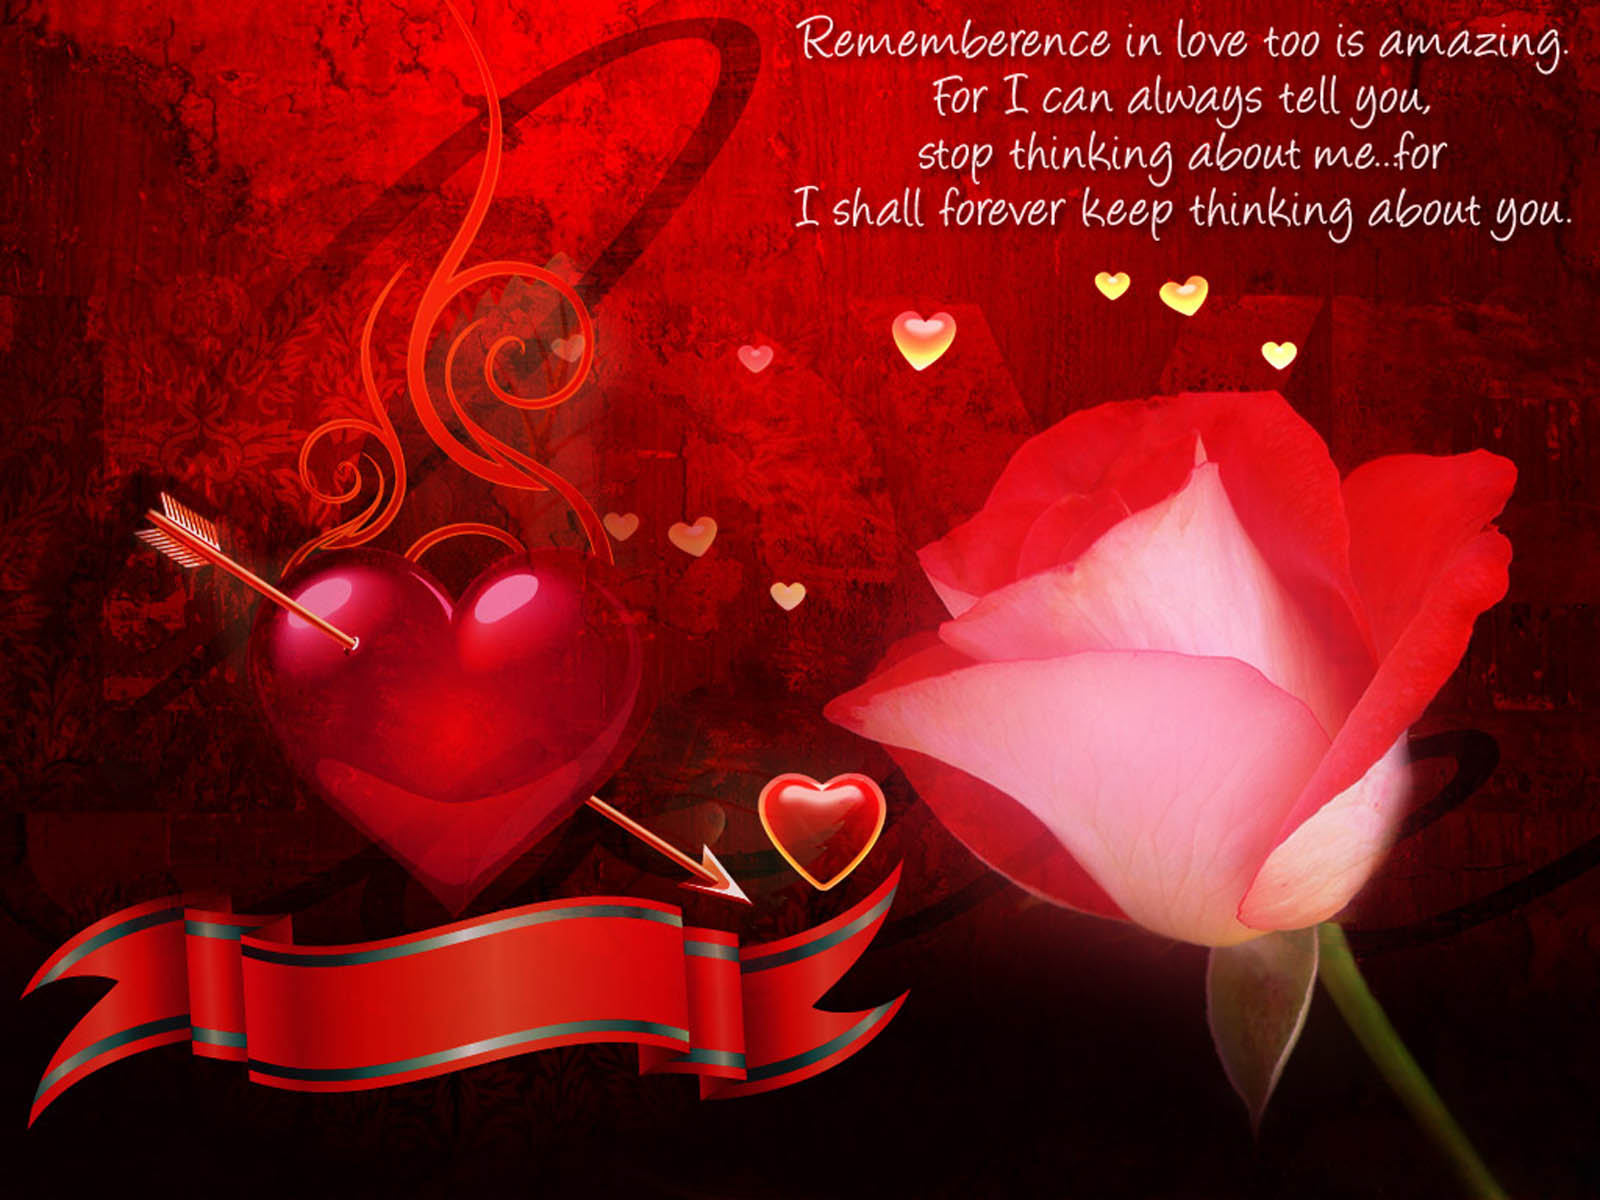 Love Wallpapers come : wallpapers: Love Quotes Desktop Wallpapers